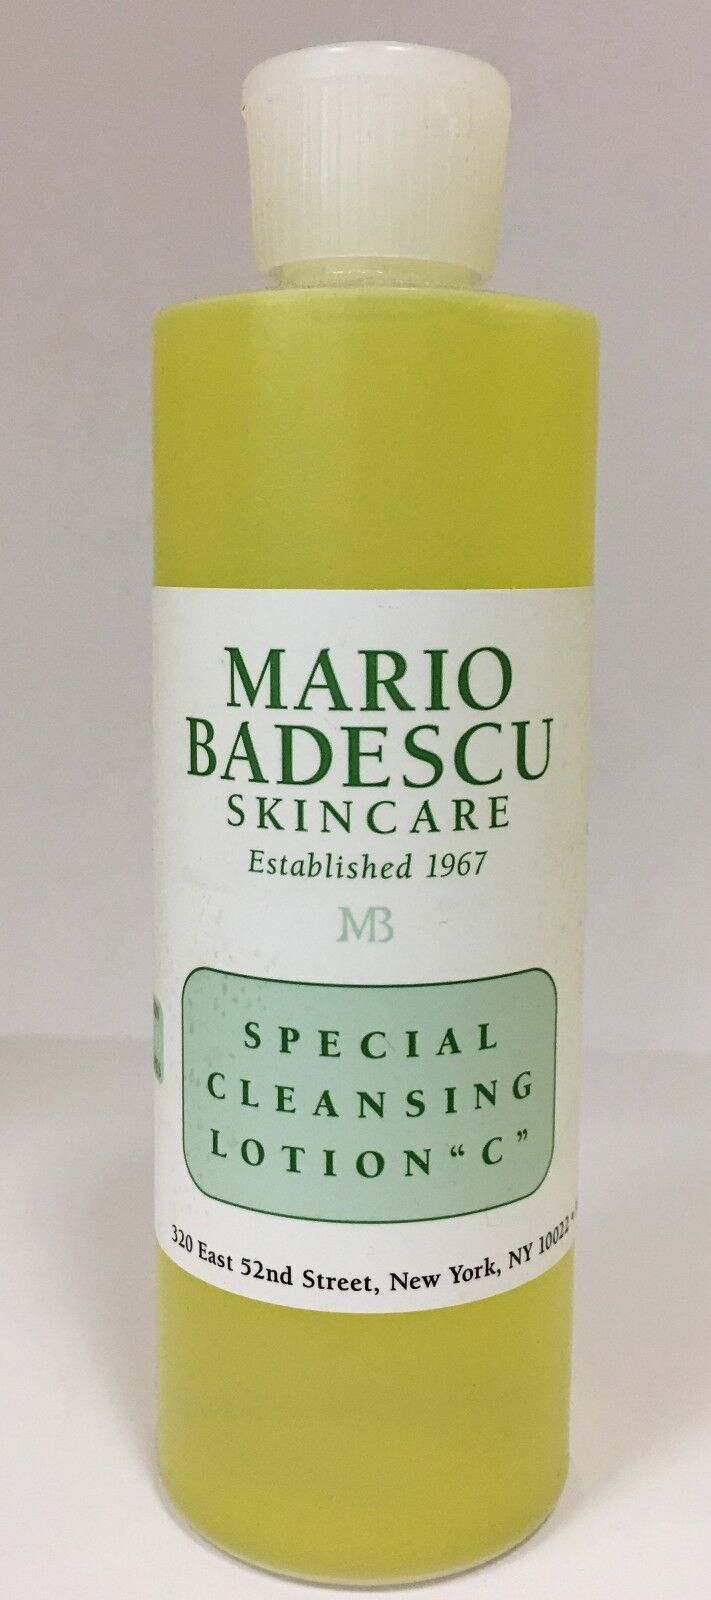 Mario Badescu Special Cleansing Lotion 'C', Size 8 oz